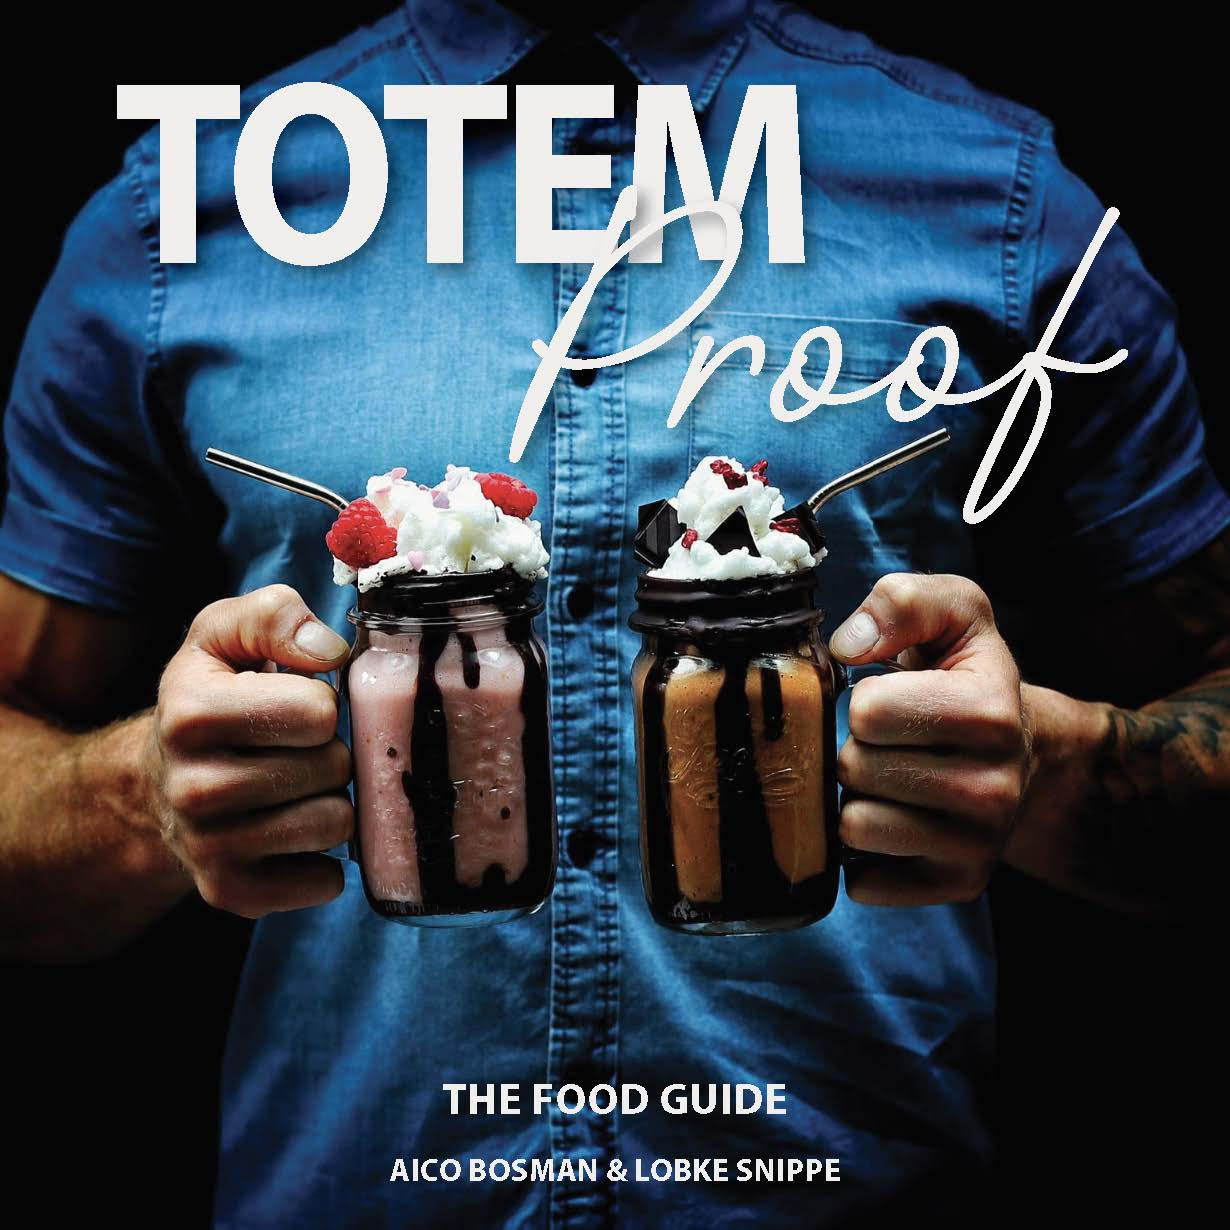 The Food Guide - Totem Training